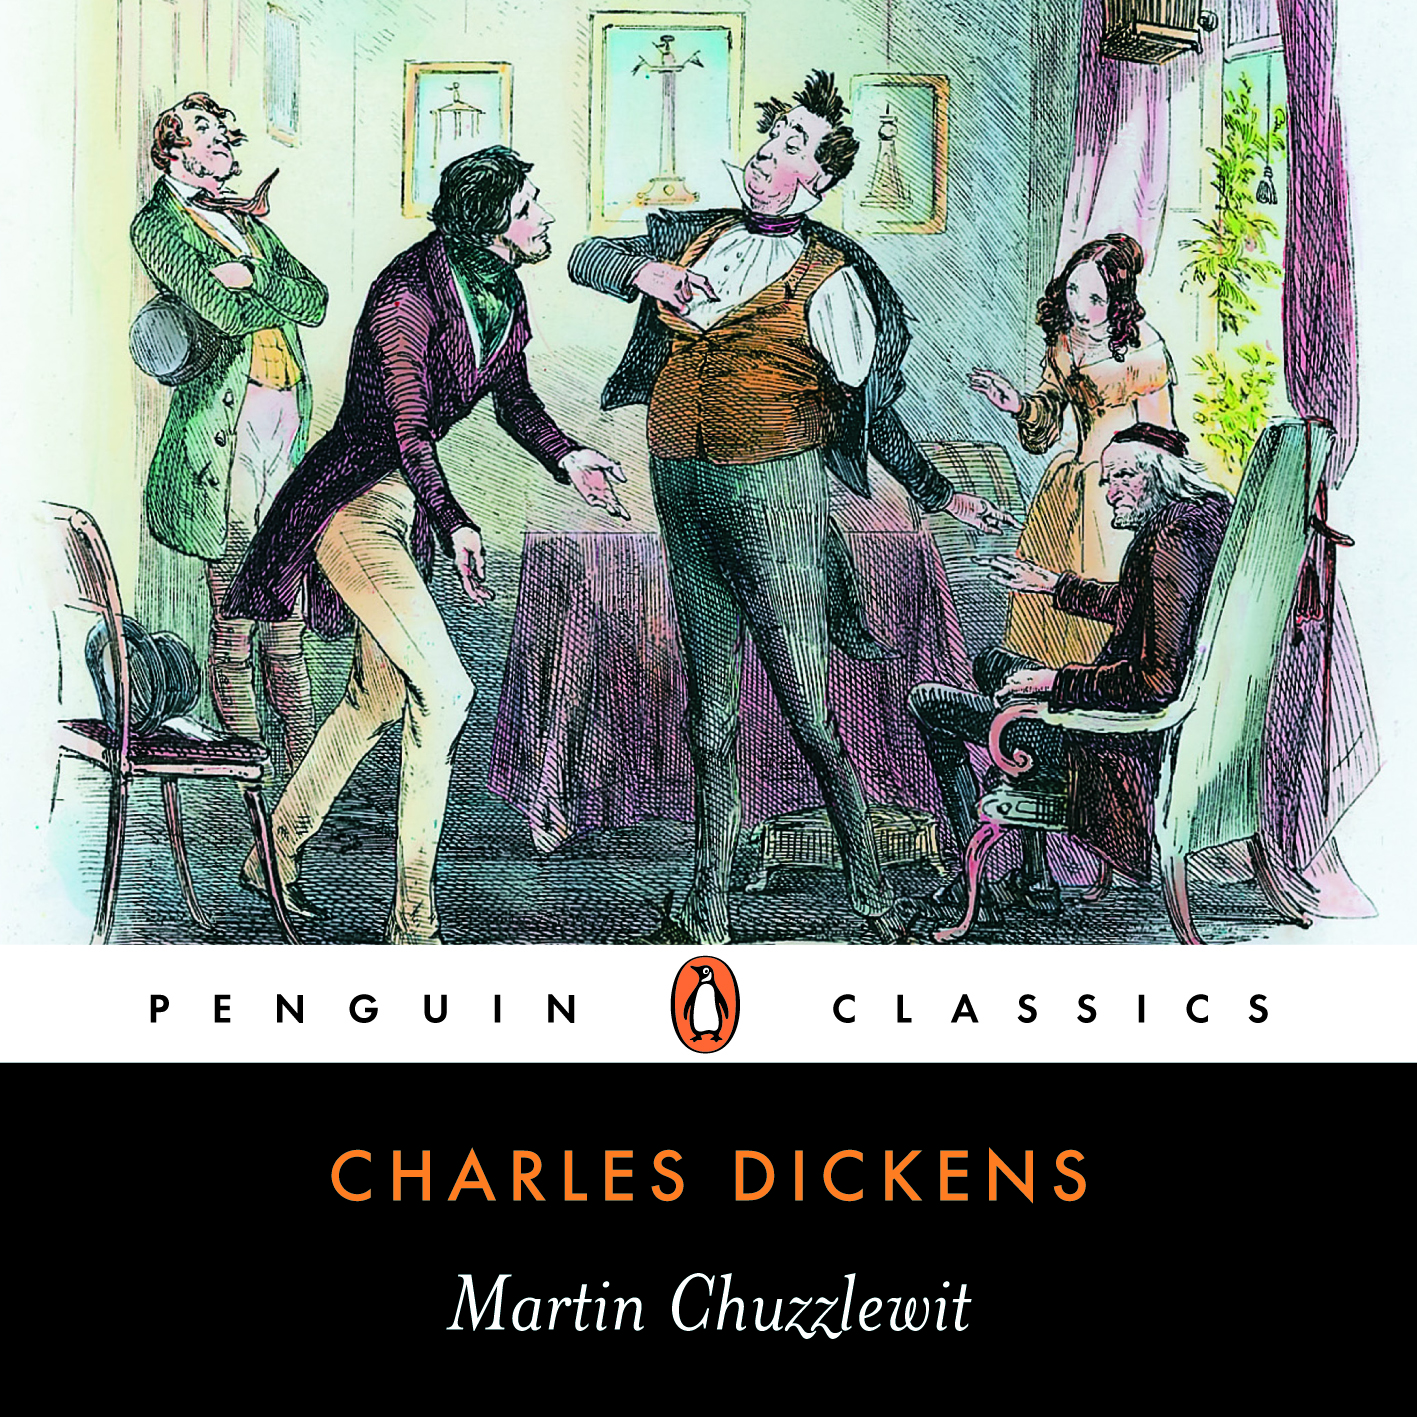 Martin Chuzzlewit by Charles Dickens, ISBN: 9780141391755